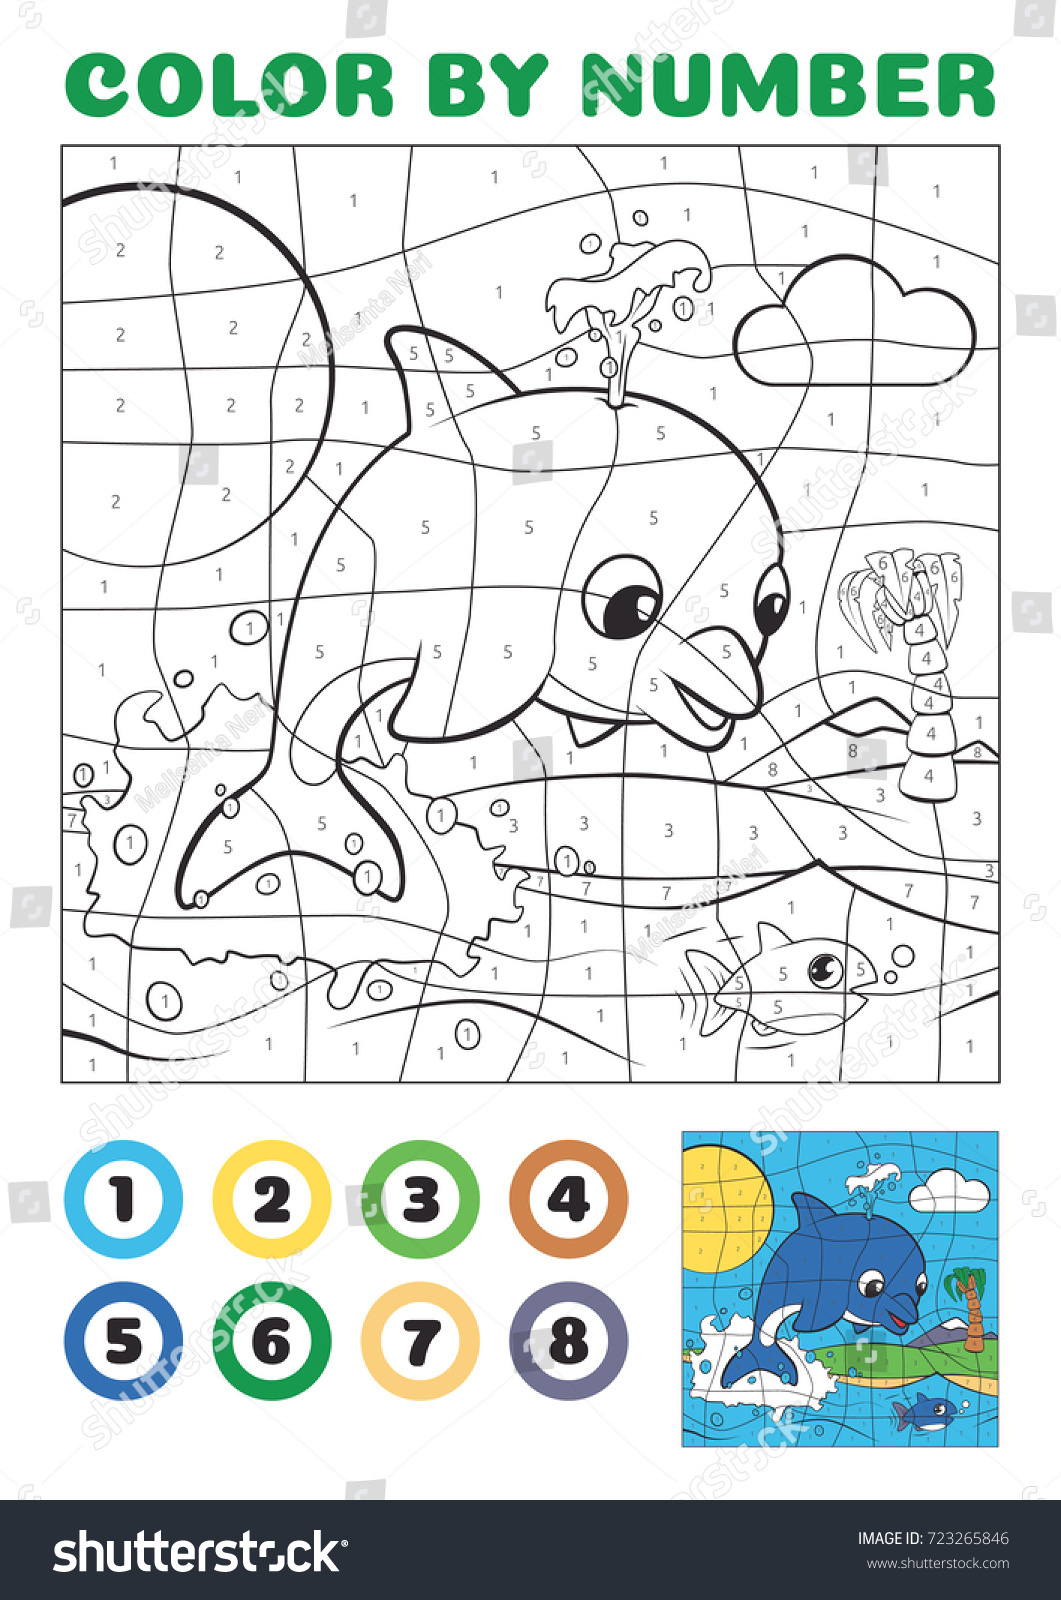 Color By Number Educational Game Kids Stock Vector 723265846 ...